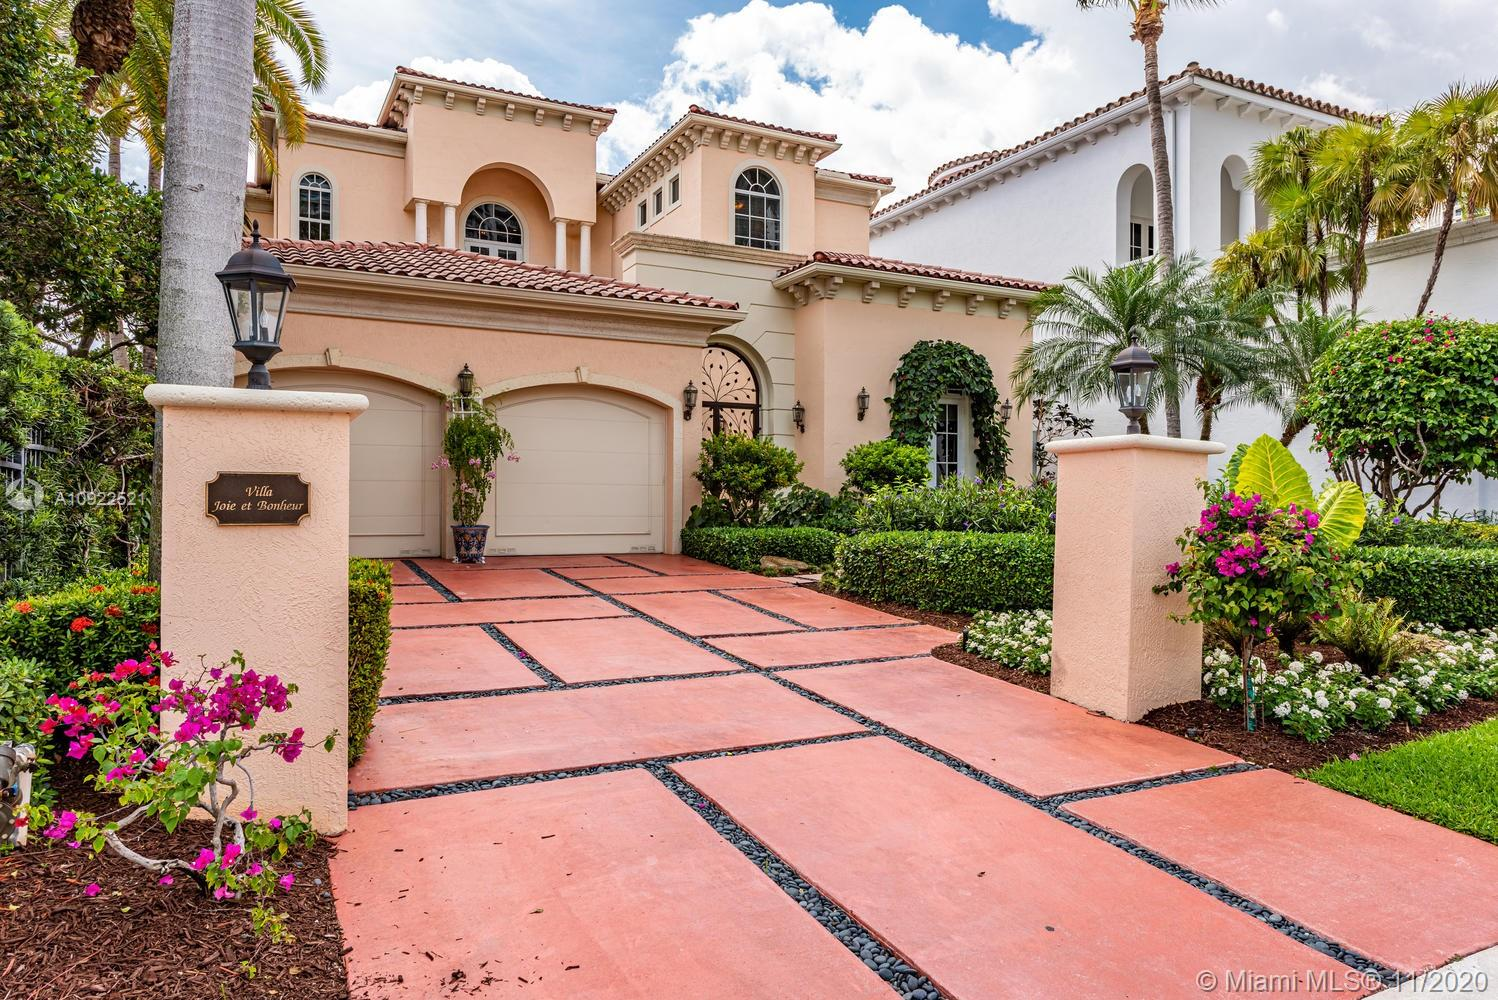 **LEAST ESPENSIVE HOME IN ISLAND ESTATES**  It's all in the details! - Private Island Living - Includes a 50' dock, 4 beds, 5 full bathrooms, 1 half bath & 4913 Sq Ft. Water views from every room, vast balconies on both floors overlooking the new sun deck & pool which sits on the open water/intracoastal. The interiors were created by artisans where every wood plant and detail was an art installation in itself. HOA includes unfettered access to Prive amenities which include 2 spas, 2 state of the art gyms, 2 full service pools, tennis courts, walking paths, 2 extensive wine & cigar rooms, luxury meeting space & much more. This luxurious home is a must see and truly one of a kind!